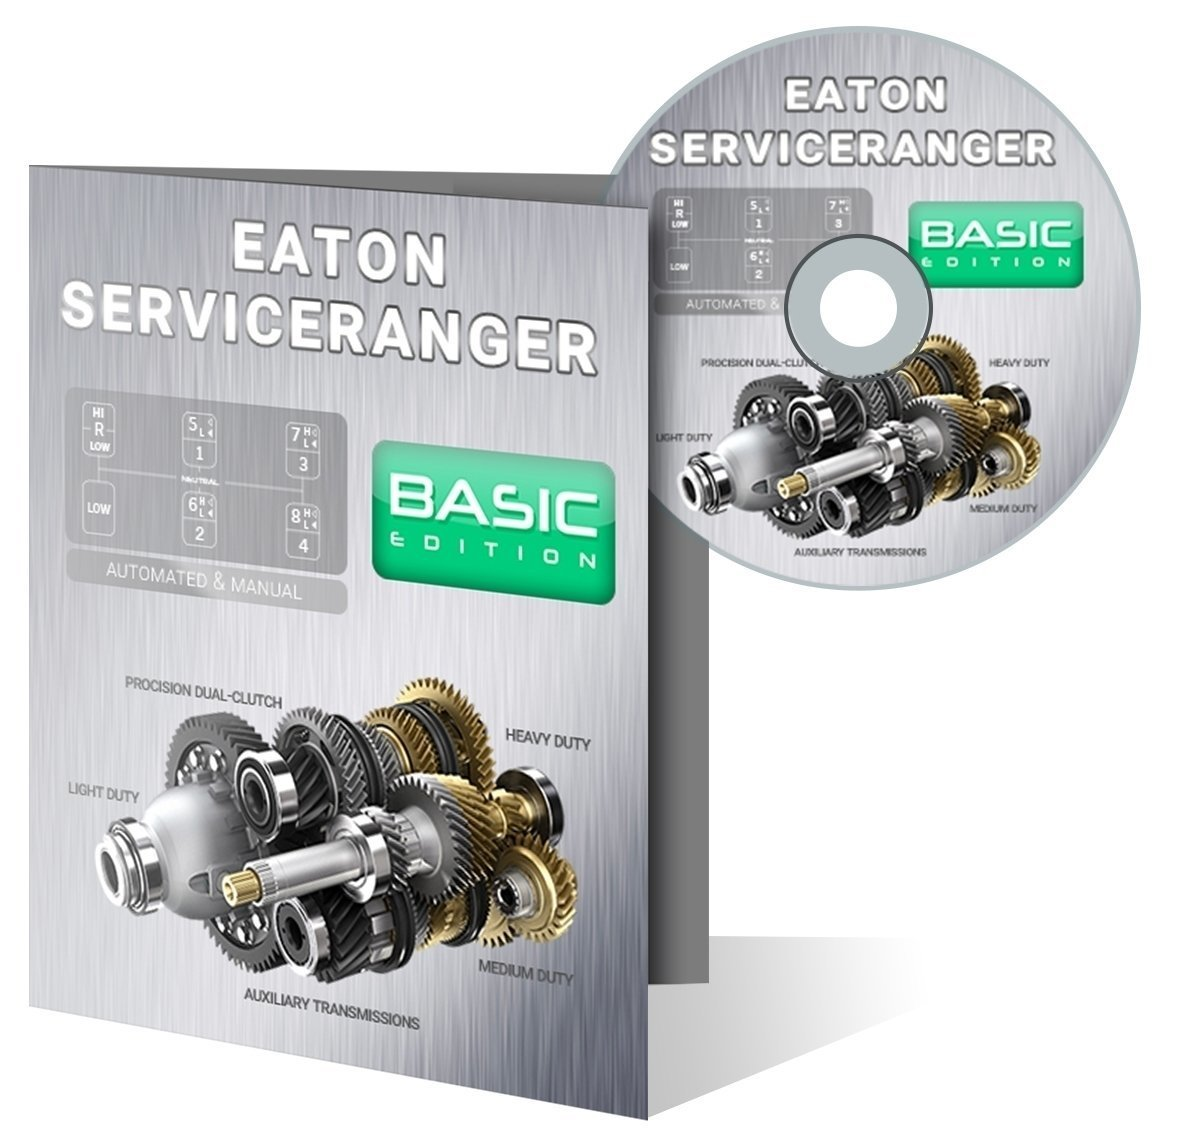 Eaton ServiceRanger Diagnostics Basic Edition 0019